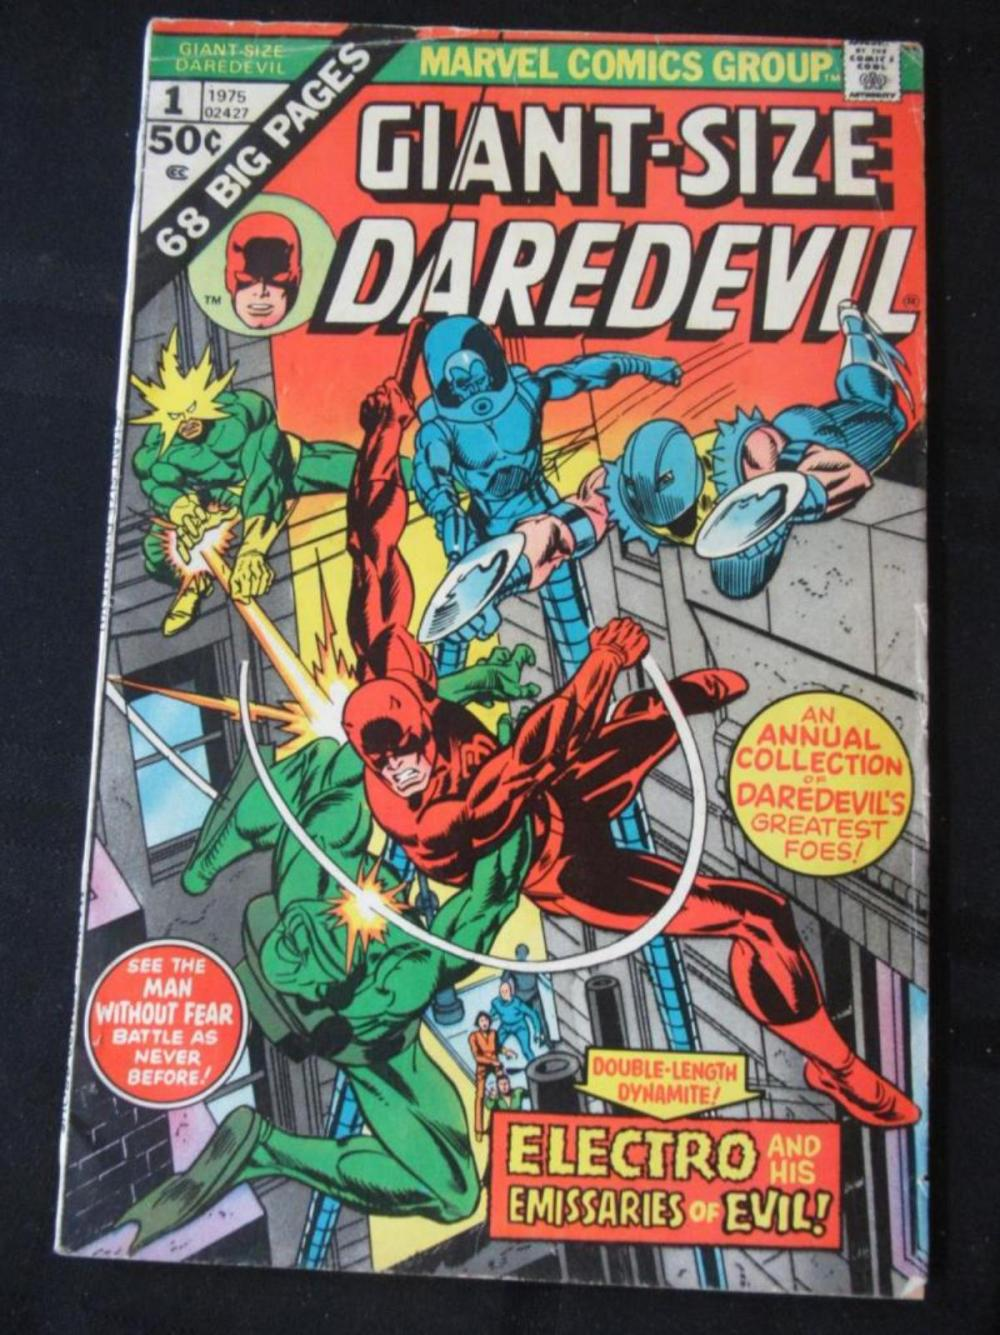 Giant Size Daredevil 50c #1 Annual Collection